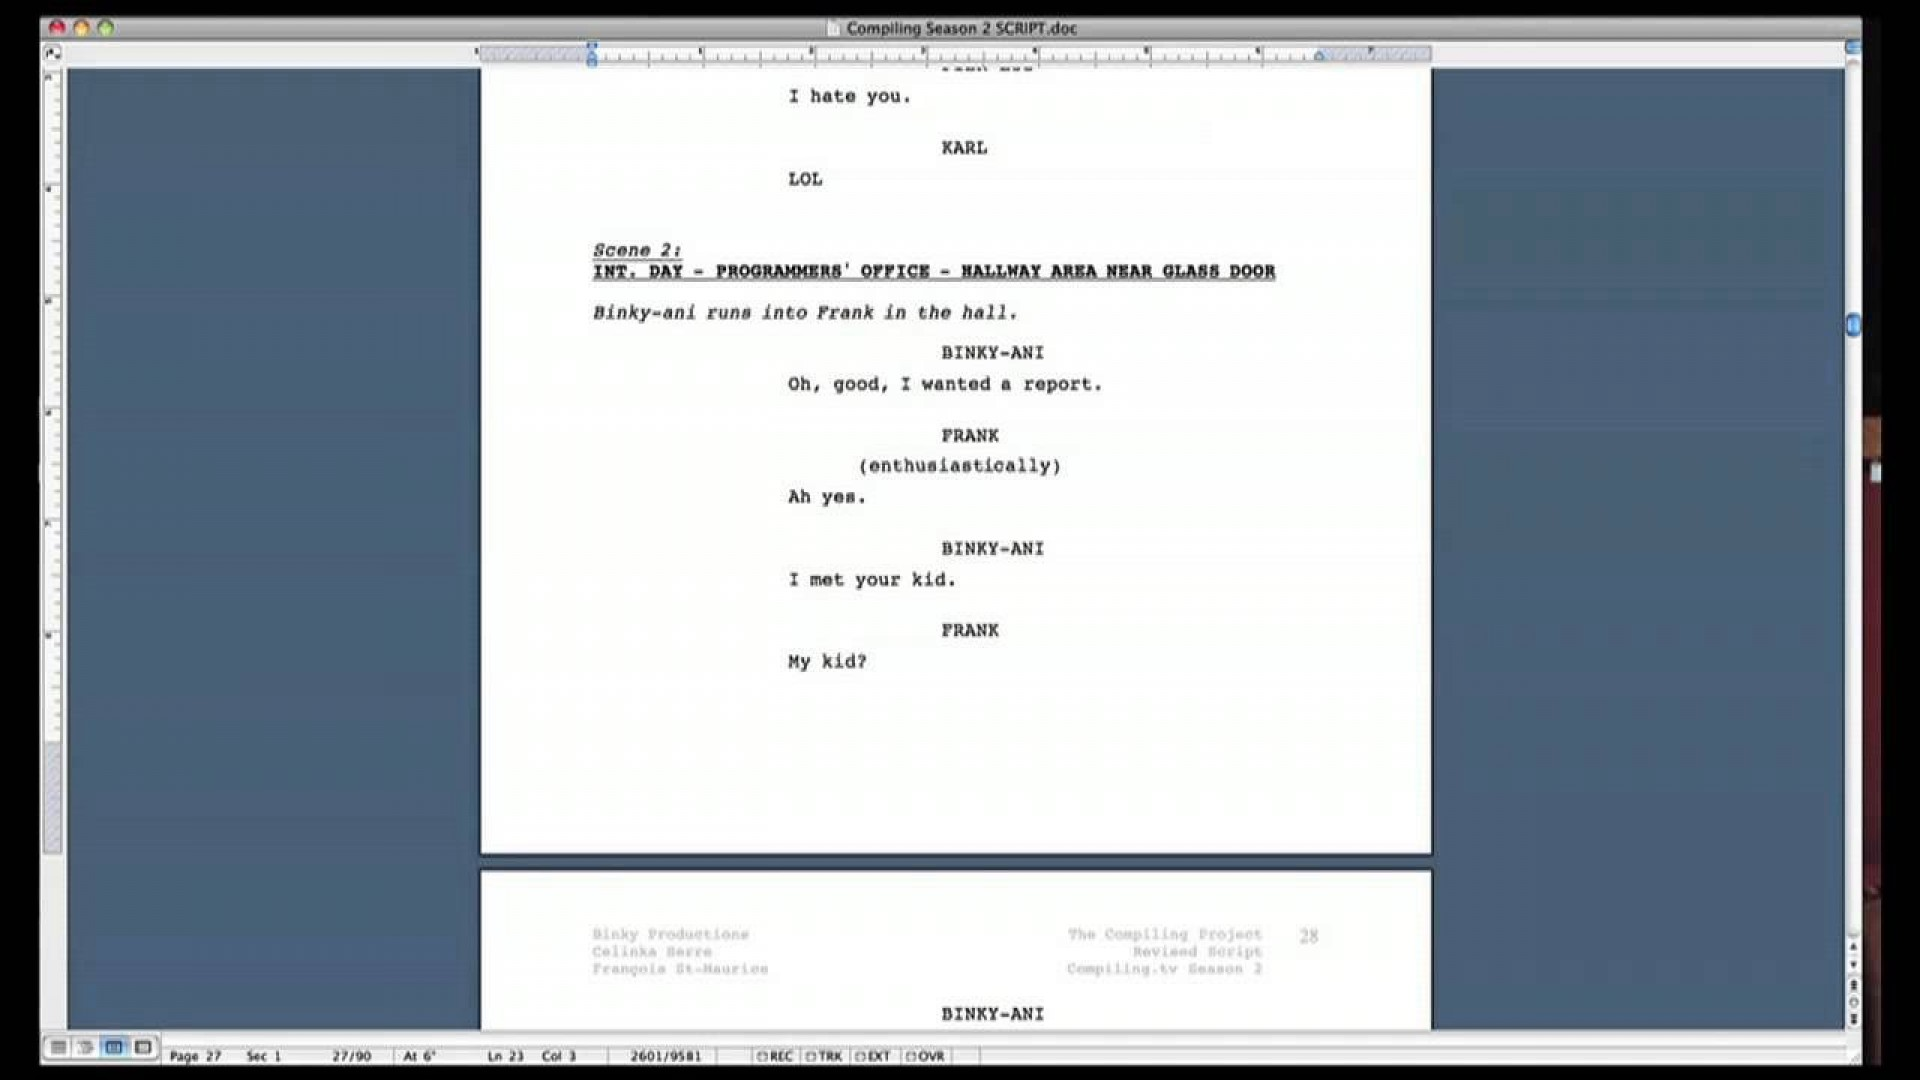 005 Top How To Use Microsoft Word Screenplay Template High Definition 1920